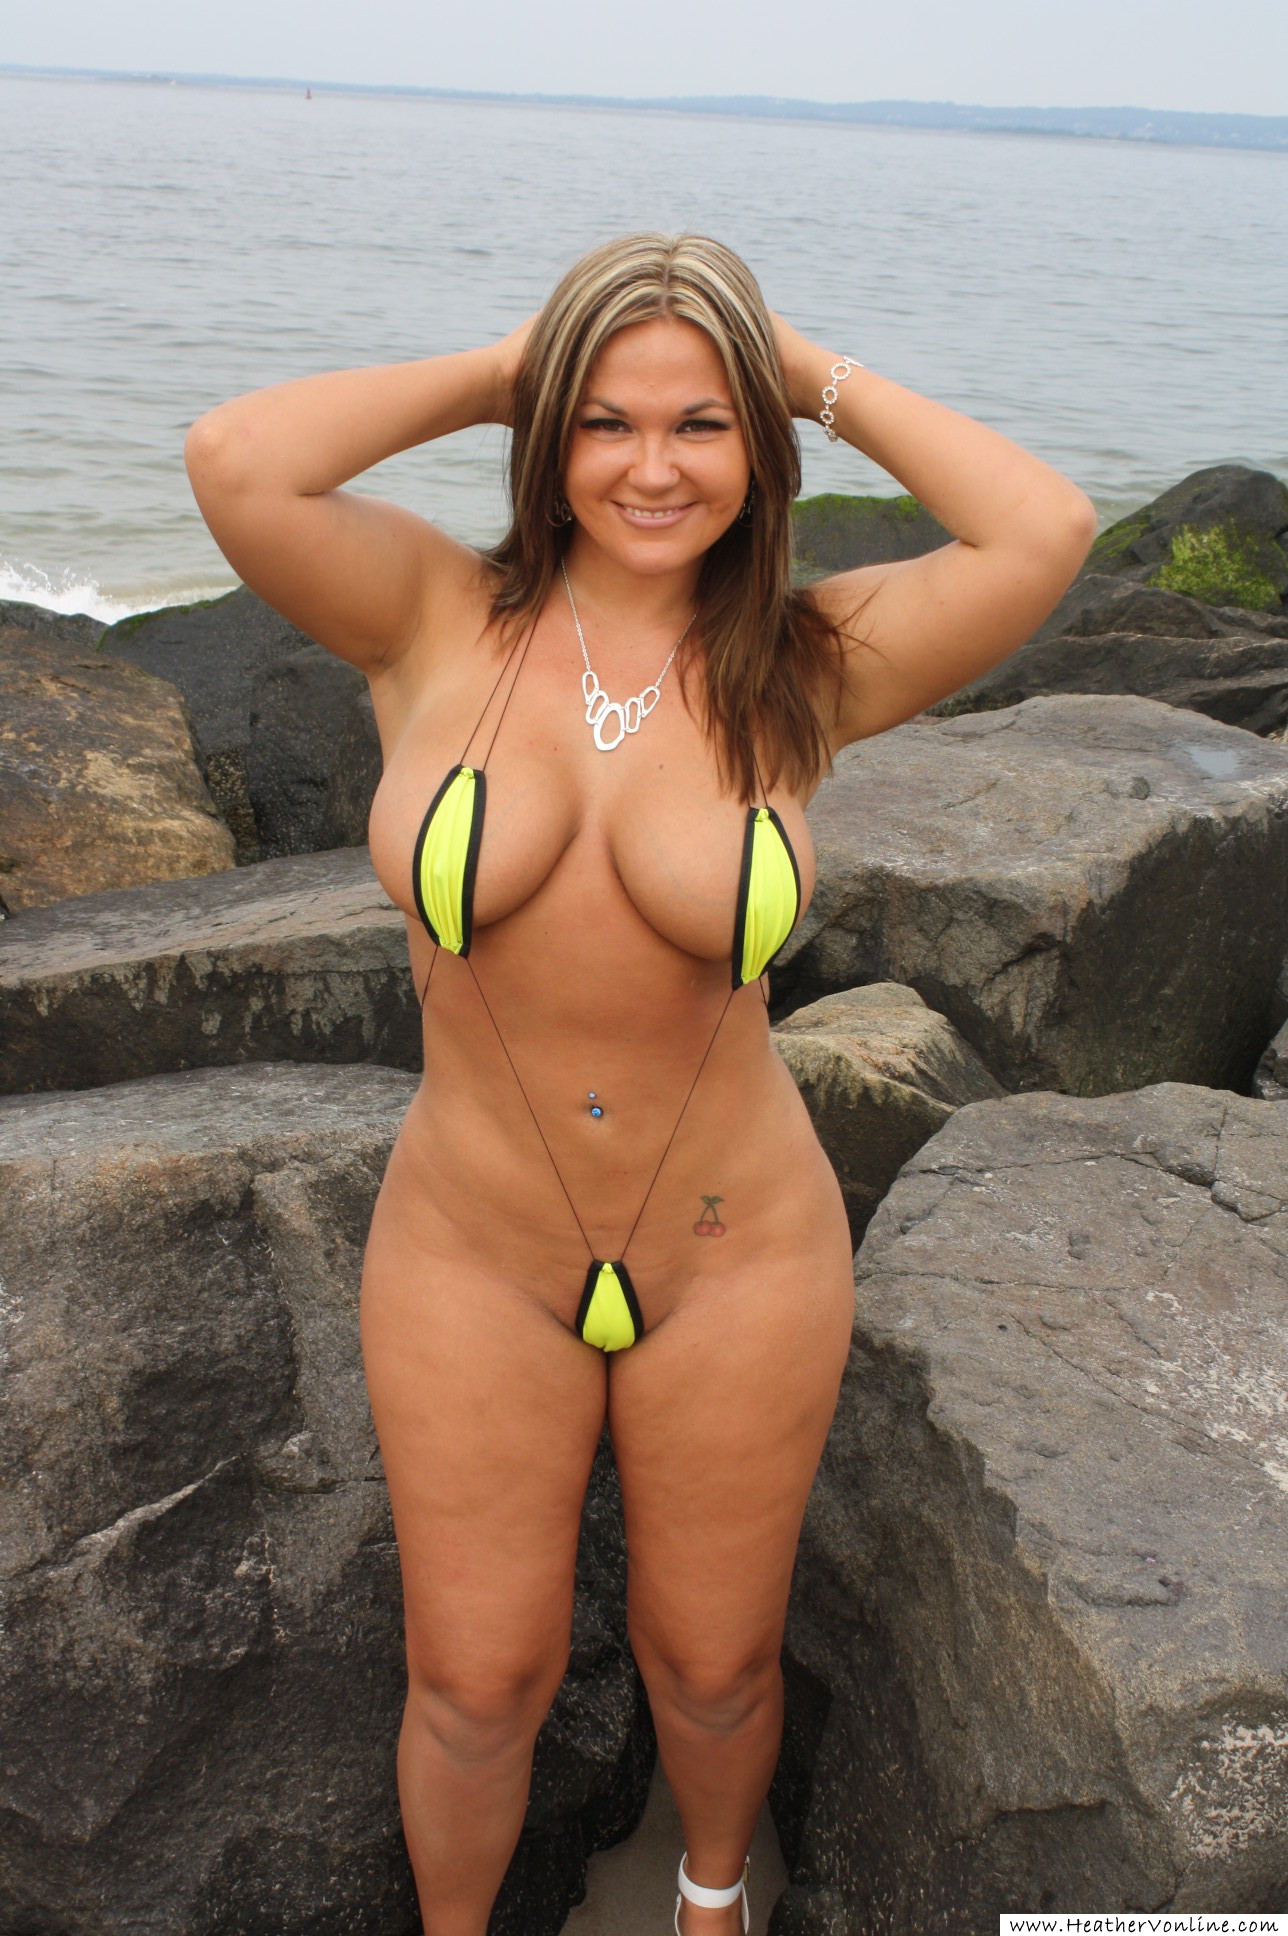 Tiny Beach Bikinis String only microkini nude model - Vimeo